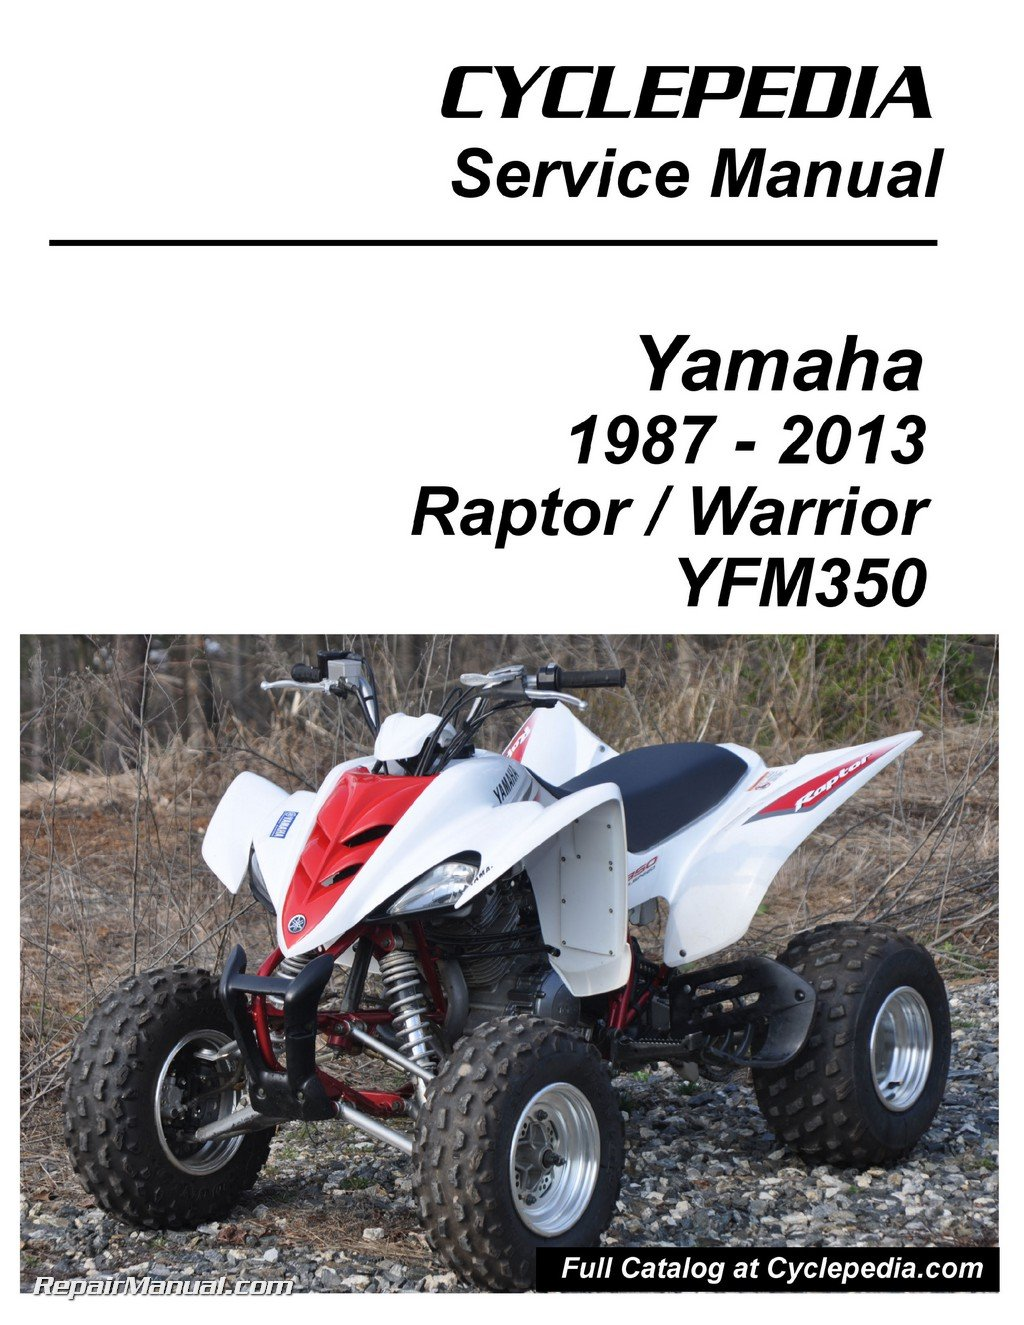 Sx 350 Warrior Wiring Diagram Trusted Diagrams Yamaha 4 Wheeler Yfm350 Find U2022 Schematic For 87